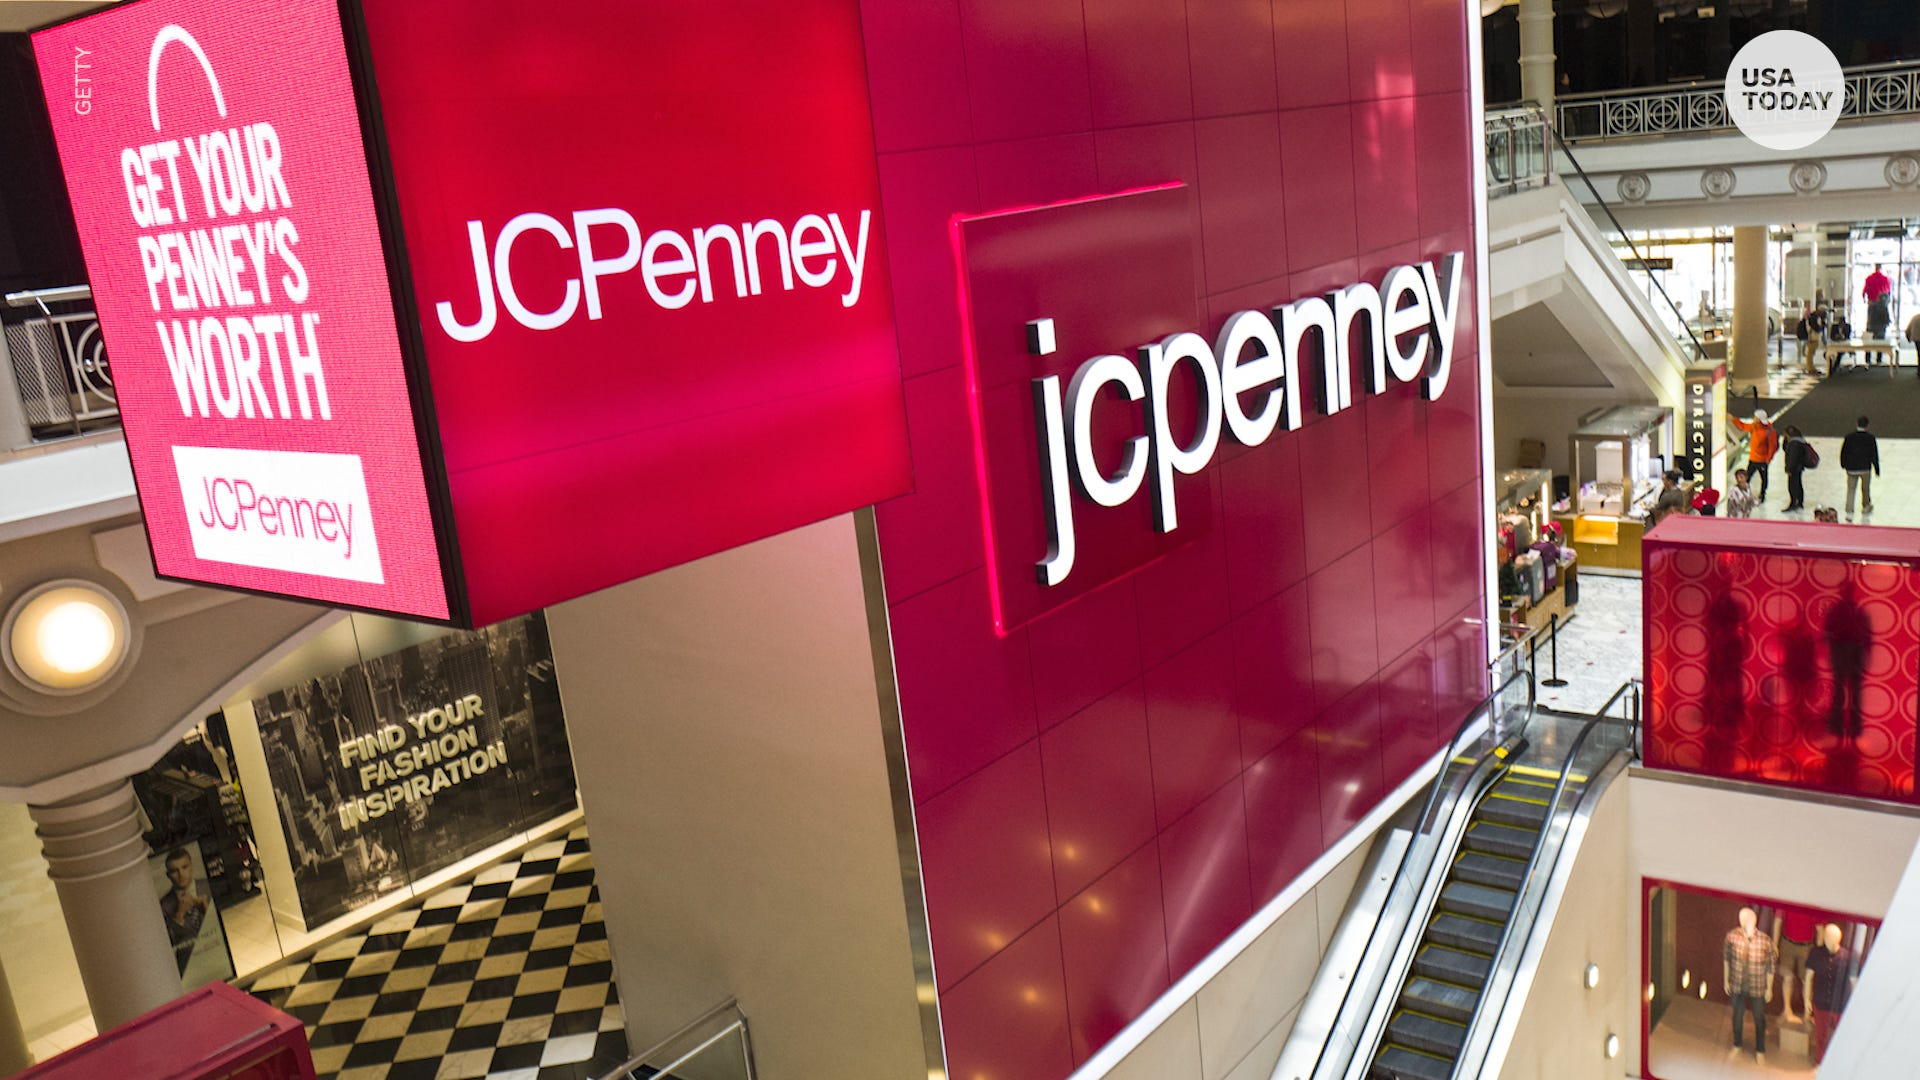 Loyal customers reflect after J.C. Penney filed for bankruptcy and closing after 118 years